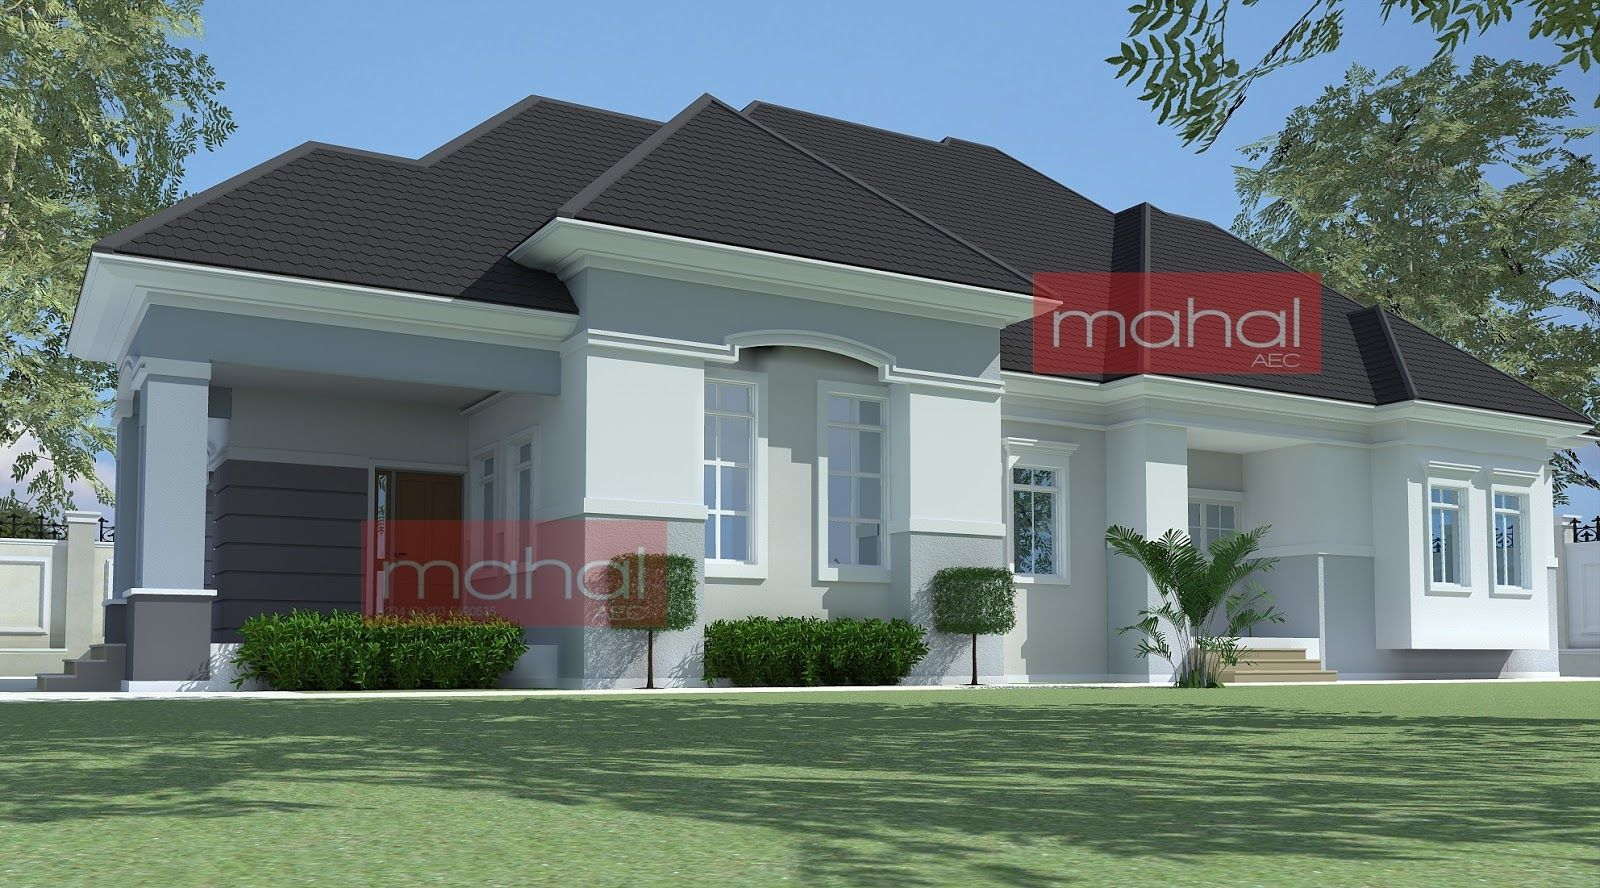 4 bedroom bungalow plan in nigeria 4 bedroom bungalow Buy architectural plans